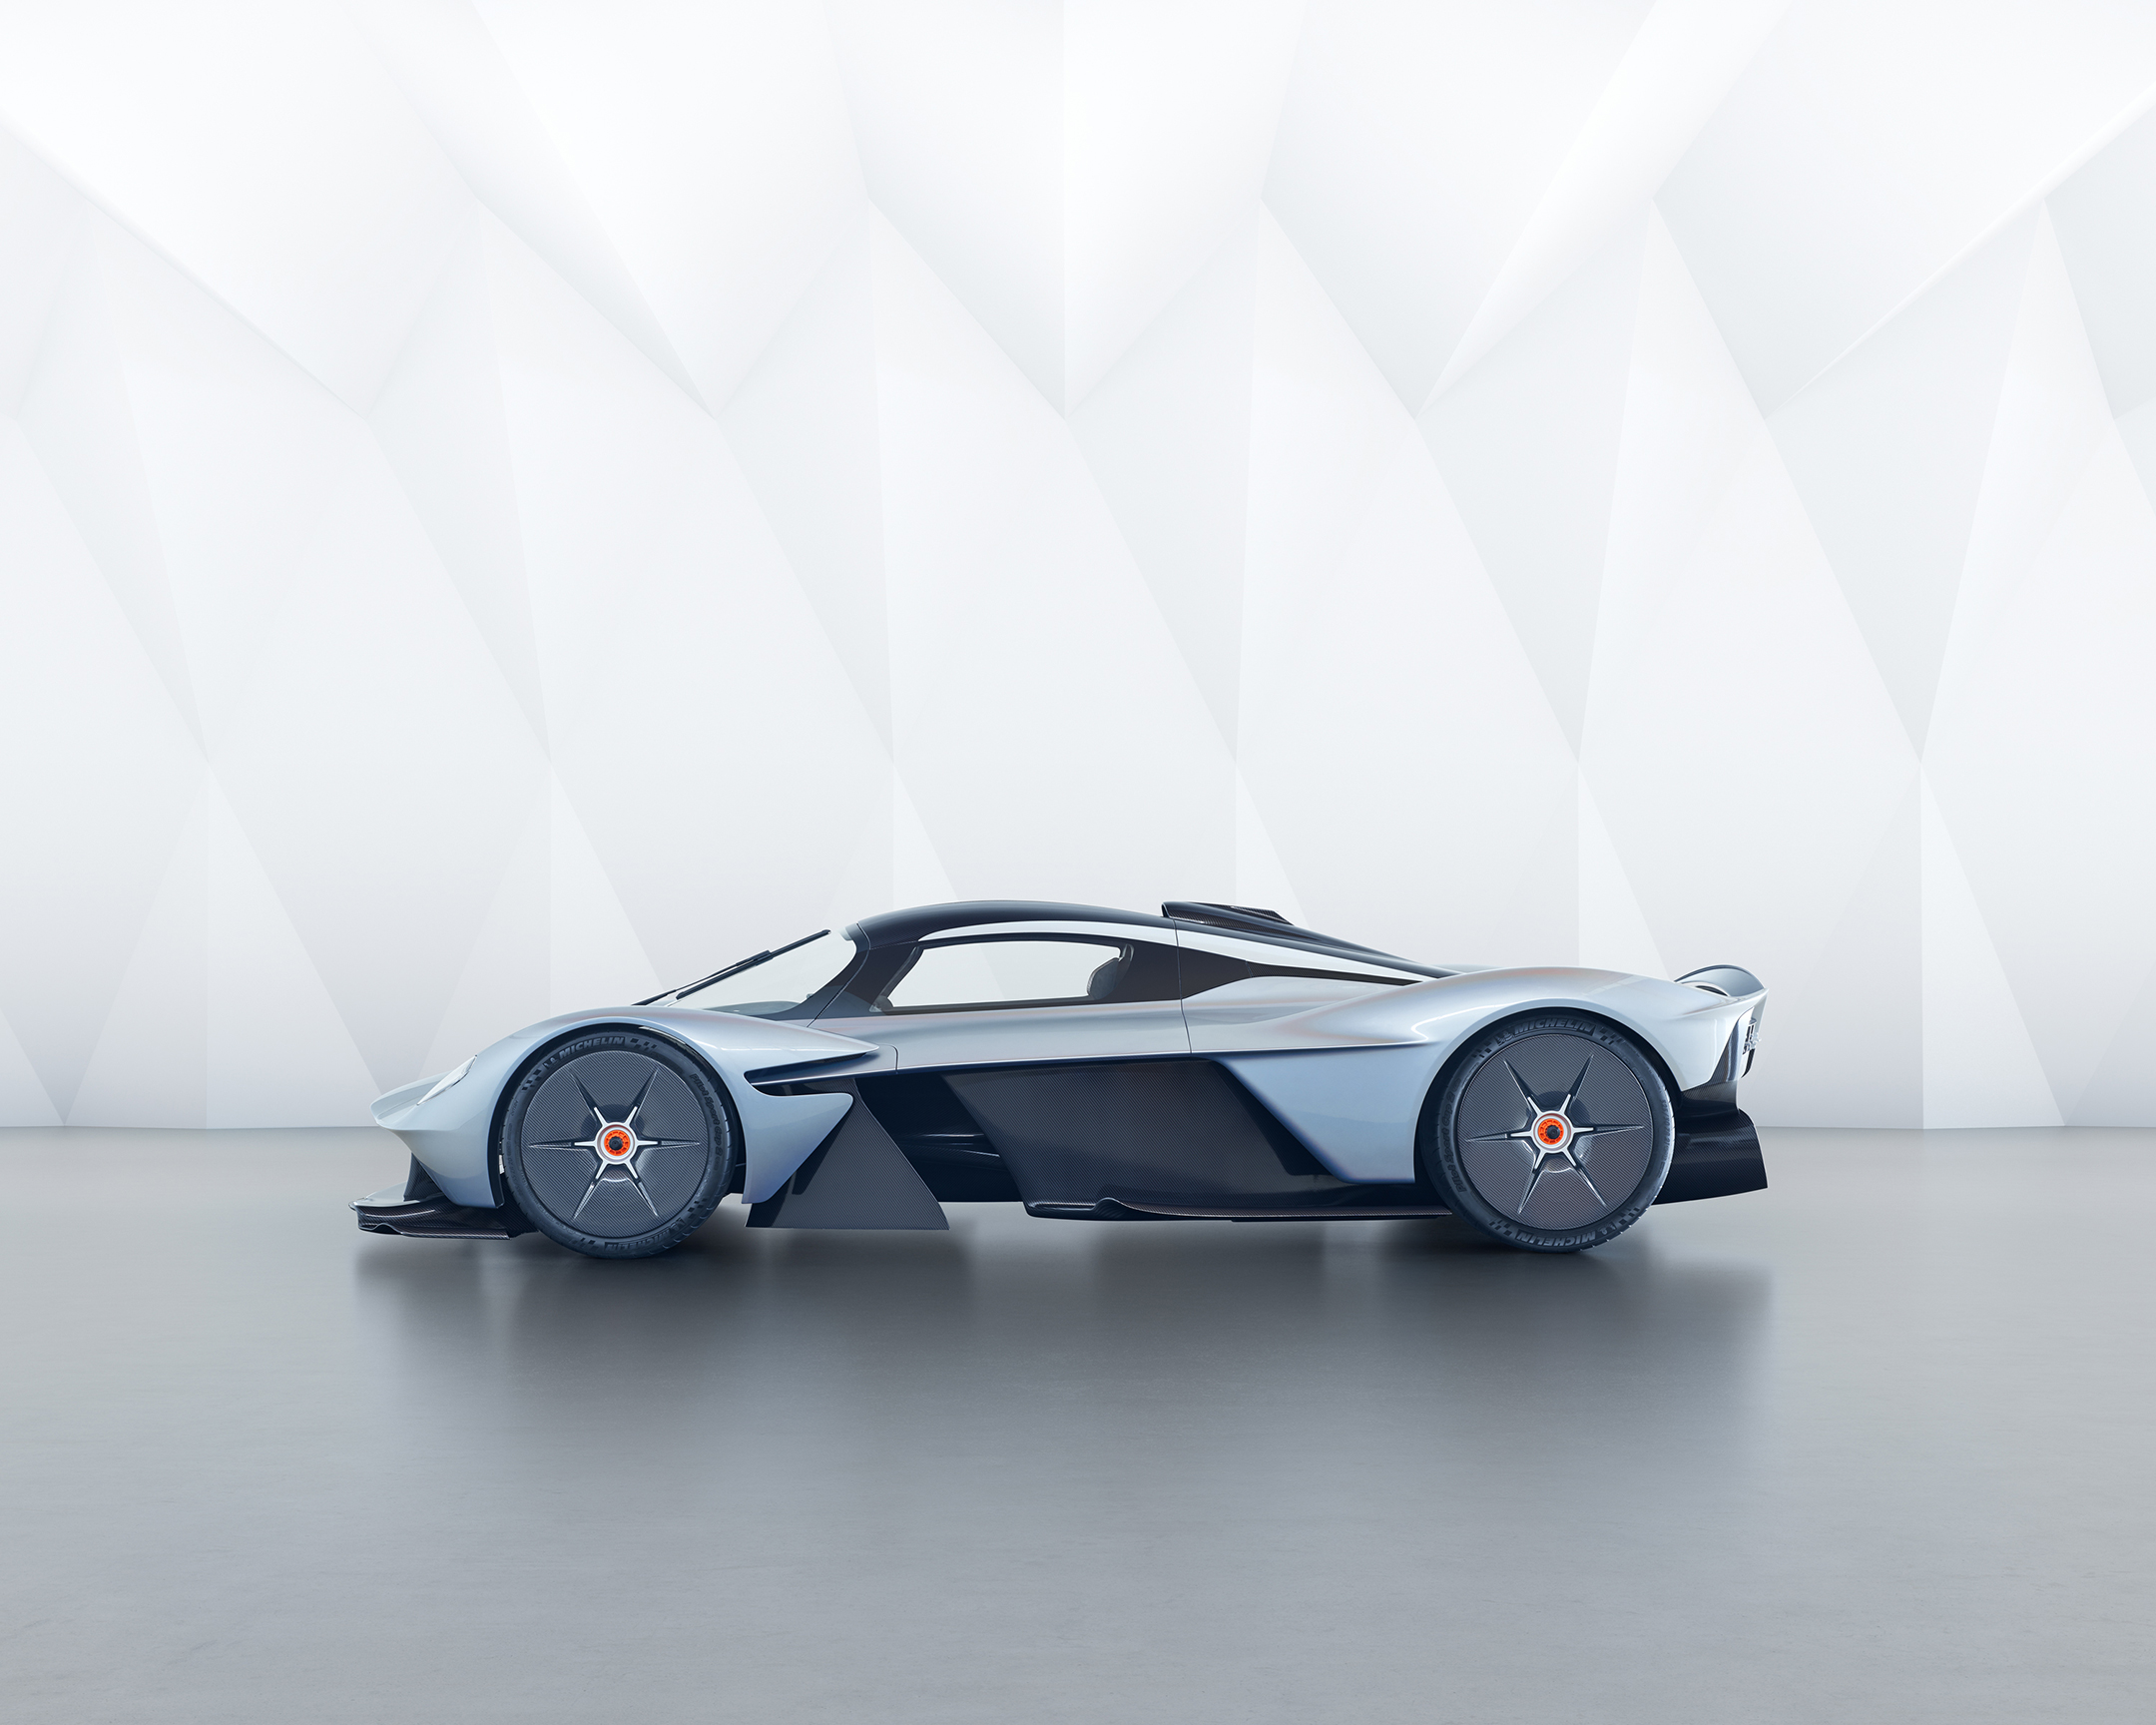 Aston Martin Valkyrie - 2017 - side-face / profil